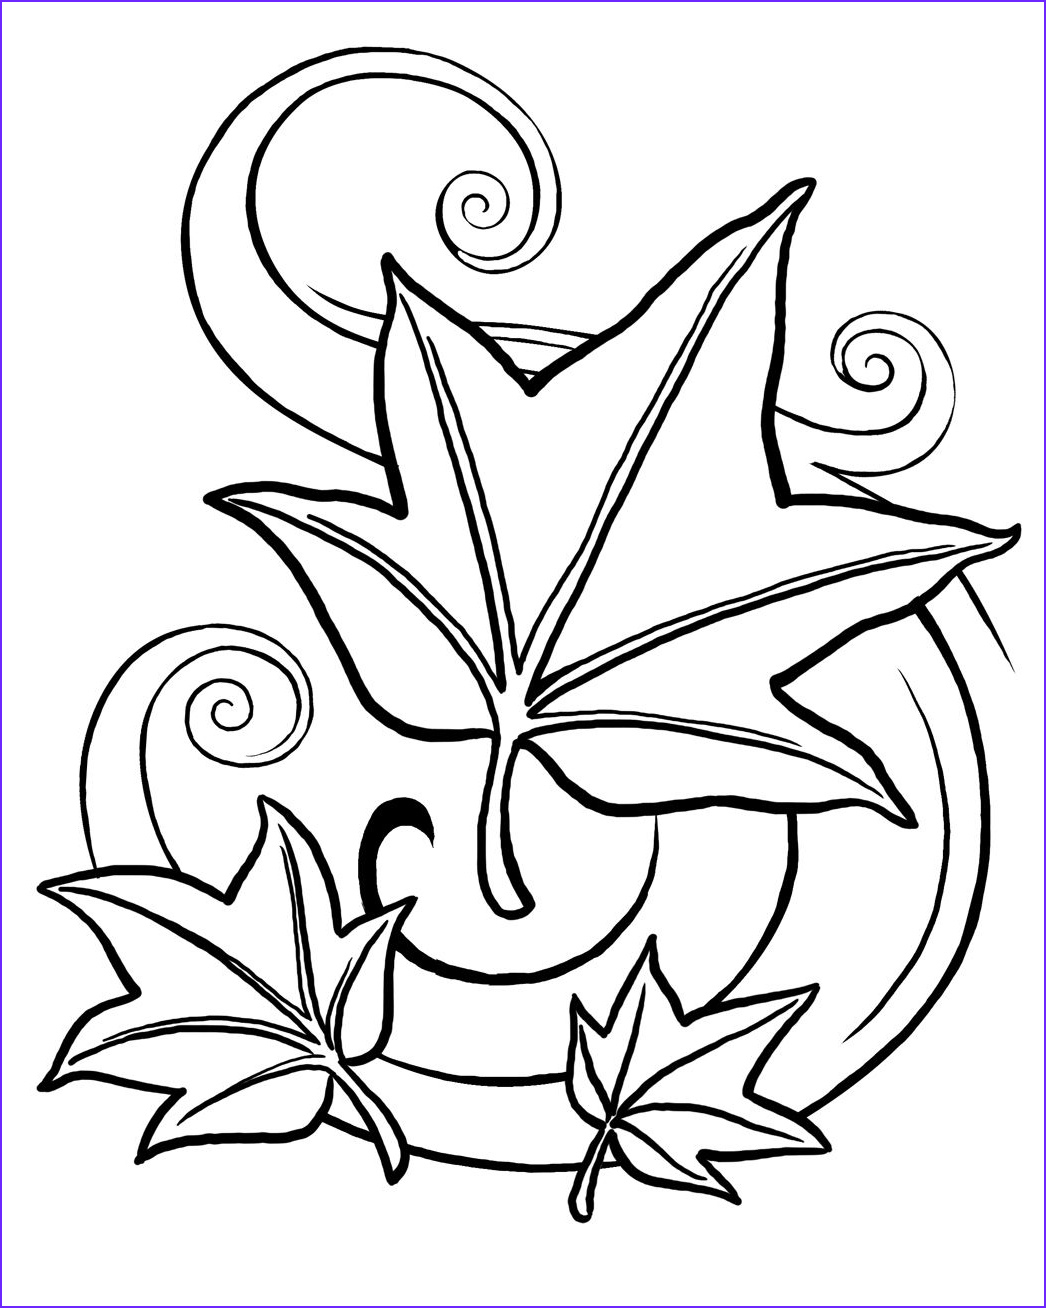 Flower Coloring Book Page Beautiful Photography Single Flower Coloring Pages at Getcolorings